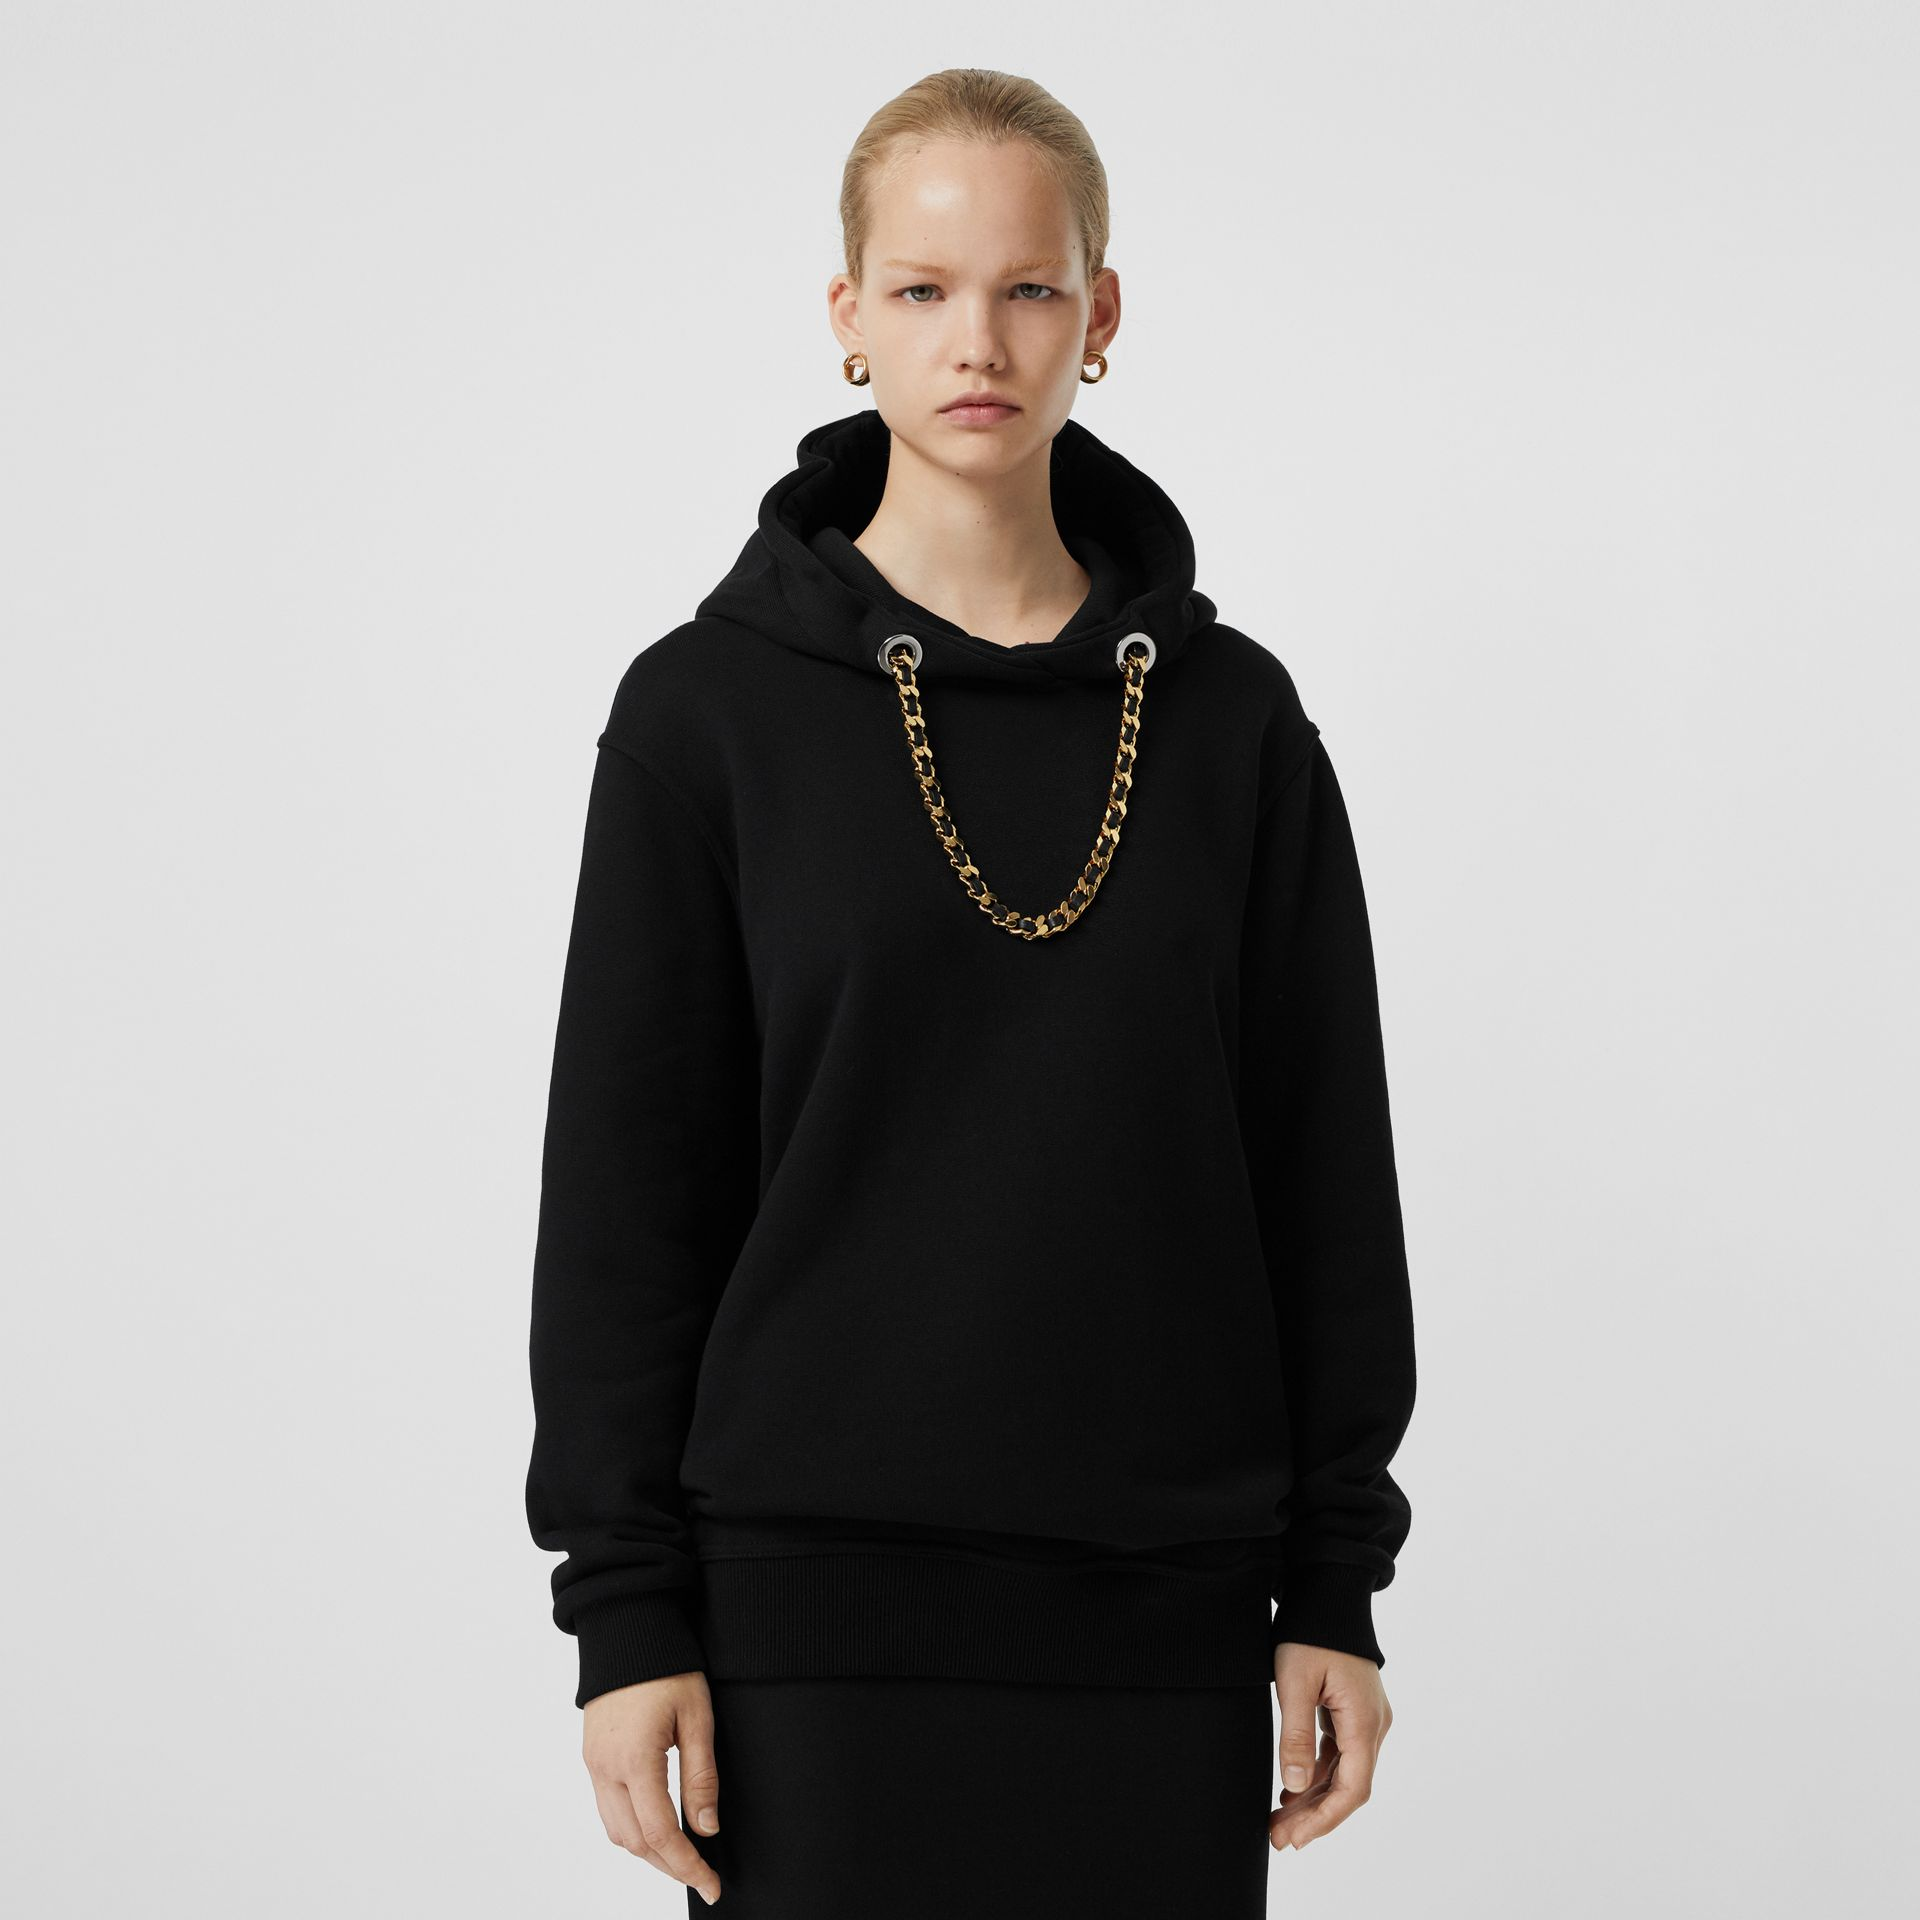 Chain Detail Hoodie in Black - Women | Burberry Singapore - gallery image 4